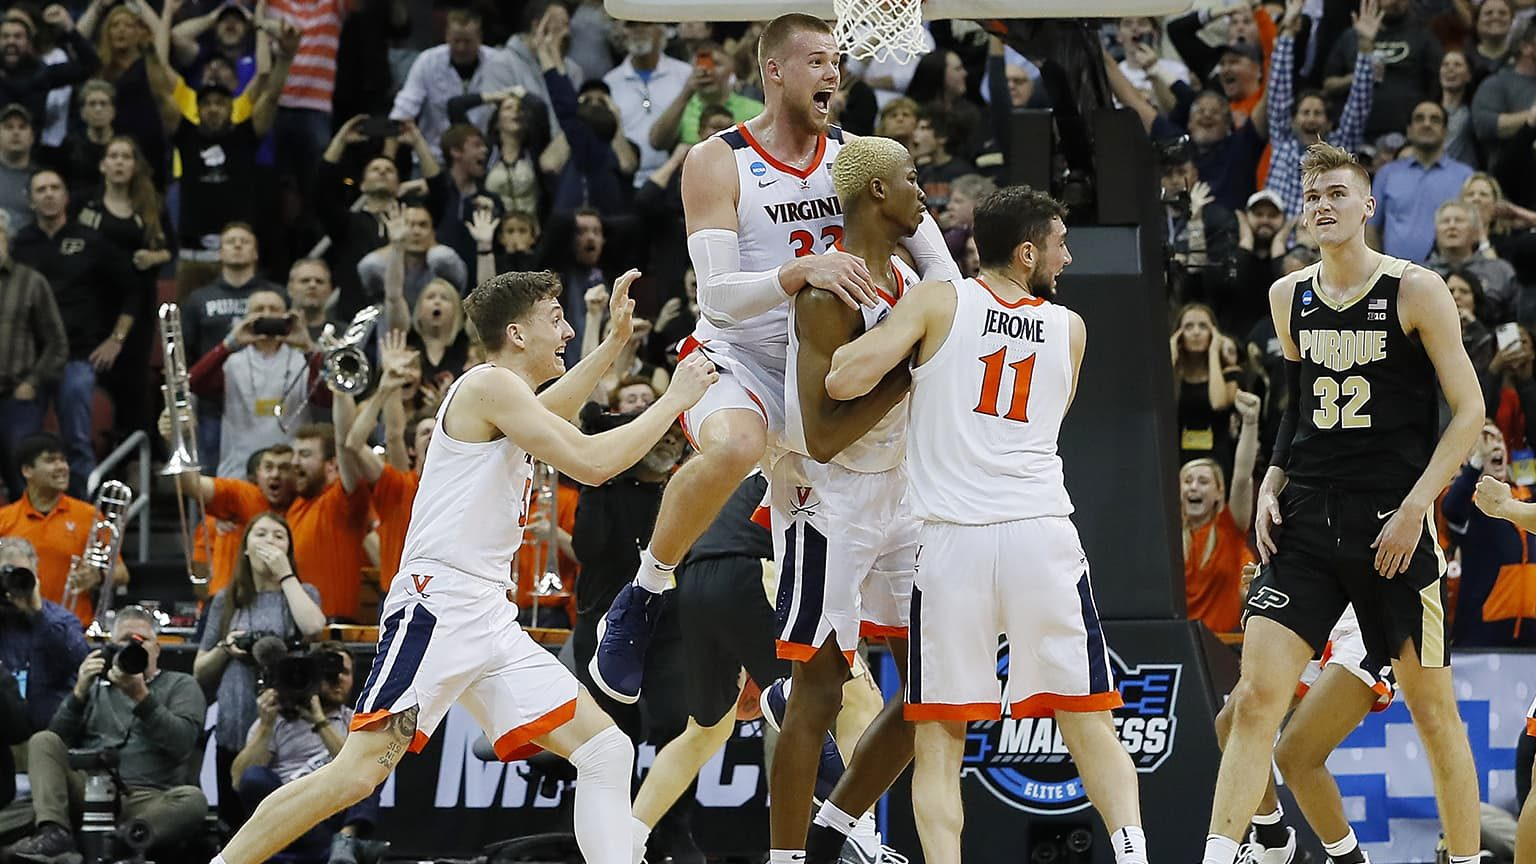 Virginia Cavaliers celebrates with teammates 2019 NCAA Men's Basketball Tournament South Regional at KFC YUM! Center on March 30, 2019